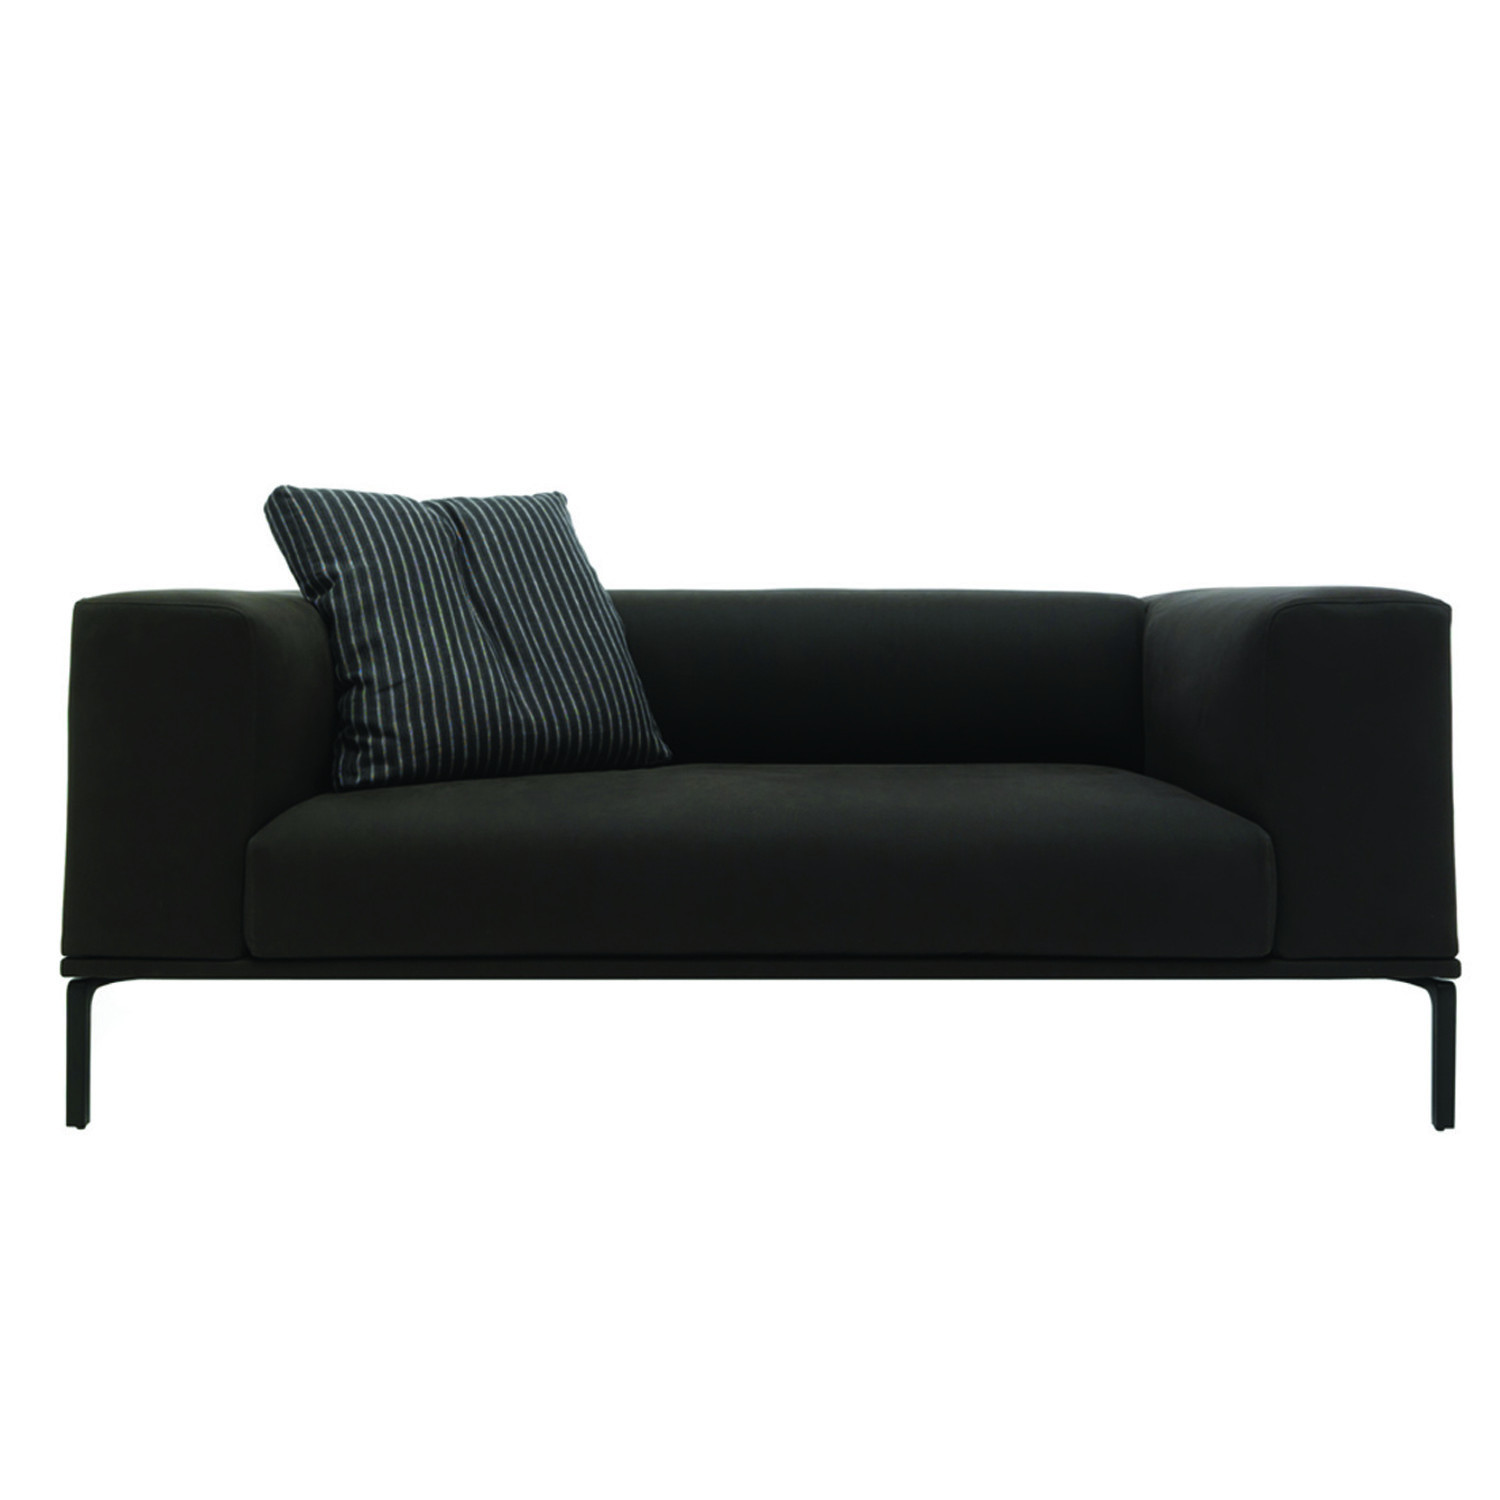 191 Moov Sofa Black One Cushion